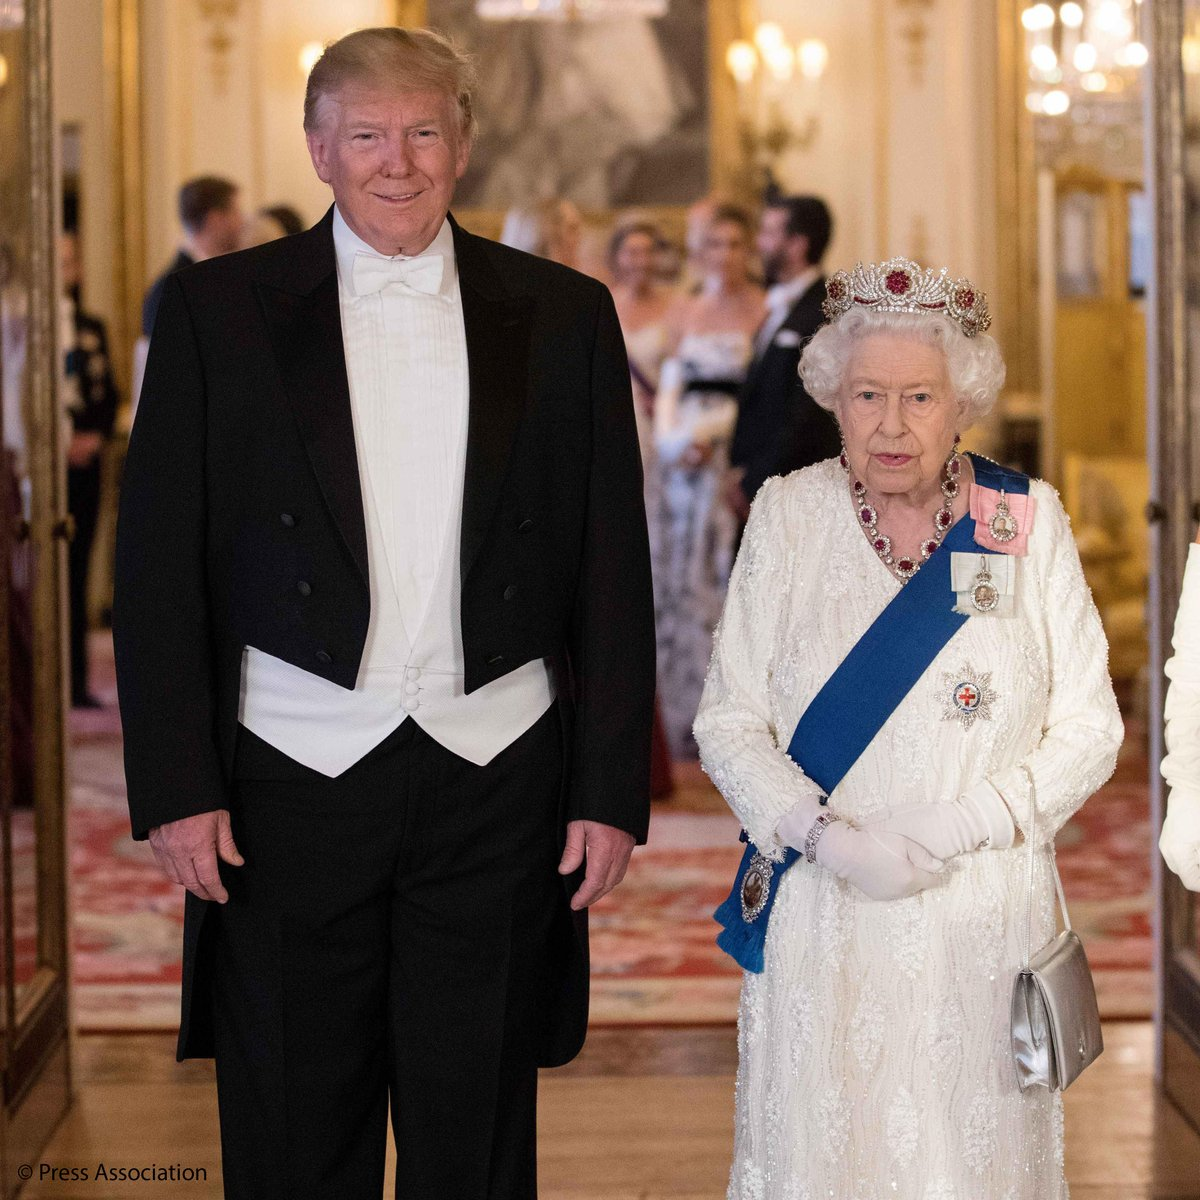 "The Royal Family on Twitter: ""'Mr President, as we look to the future, I am  confident that our common values and shared interests will continue to  unite us.' In her speech, The"